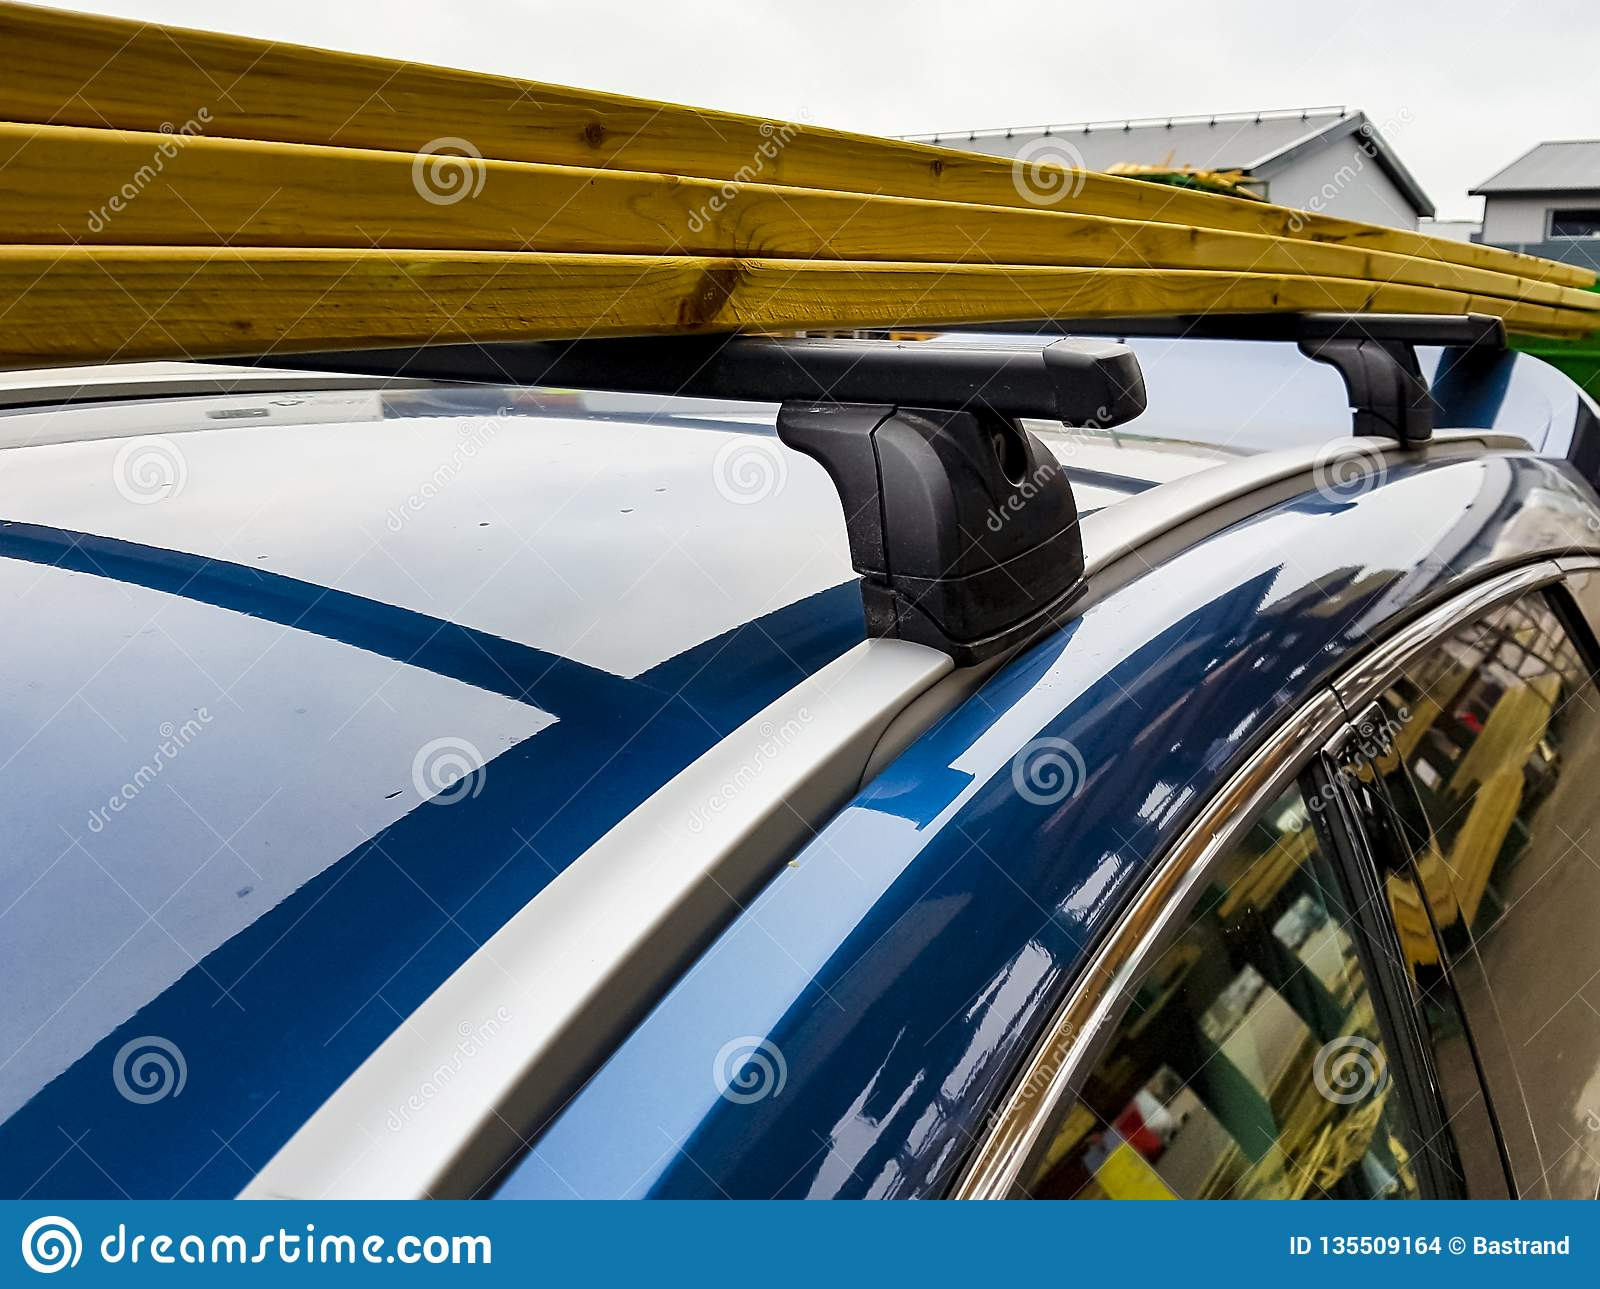 Timber For Construction And Repair Loaded On The Top Of A